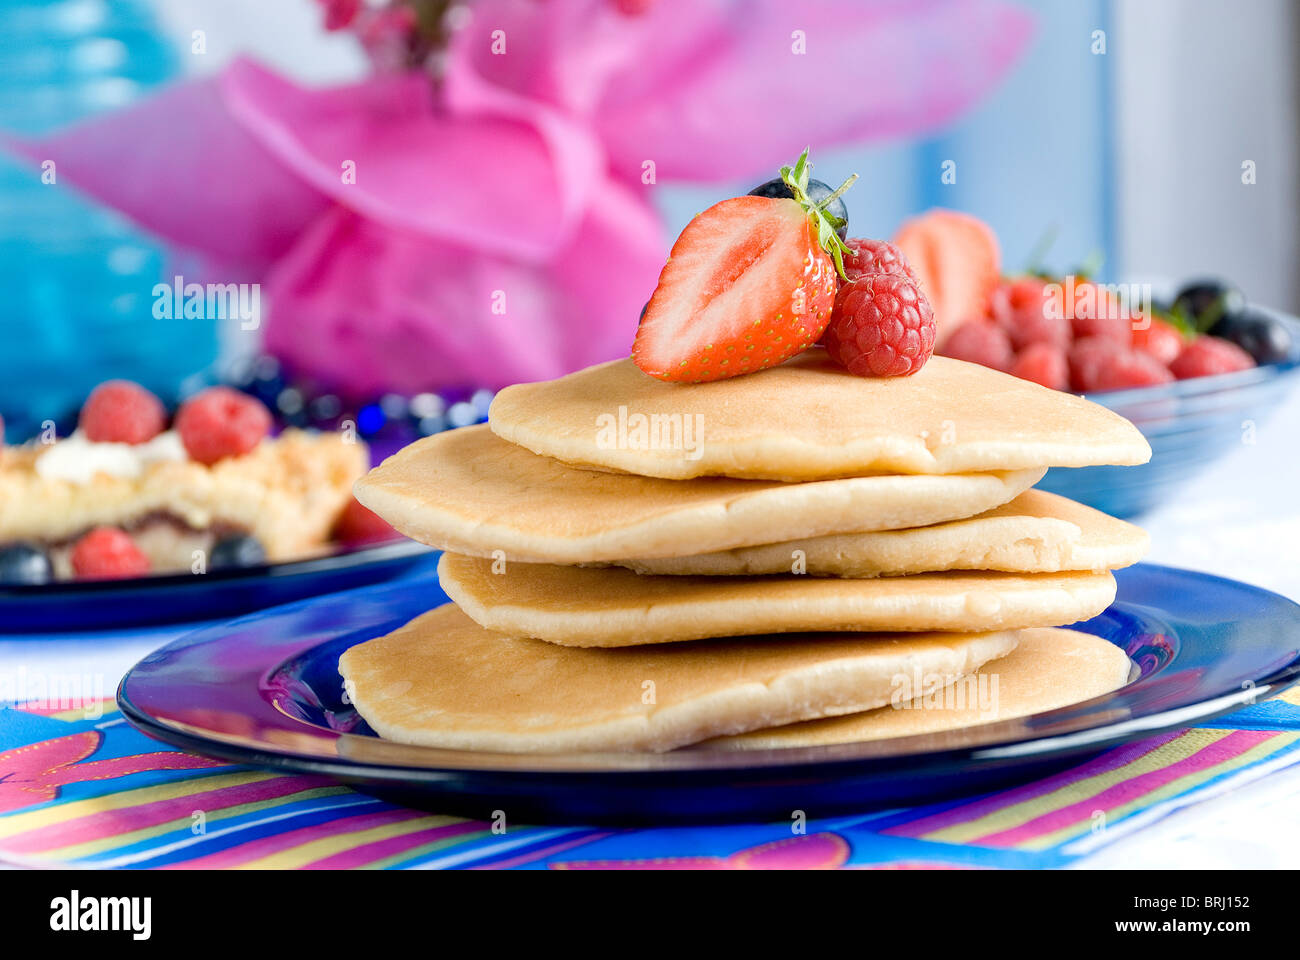 Pancakes with berry fruits - Stock Image